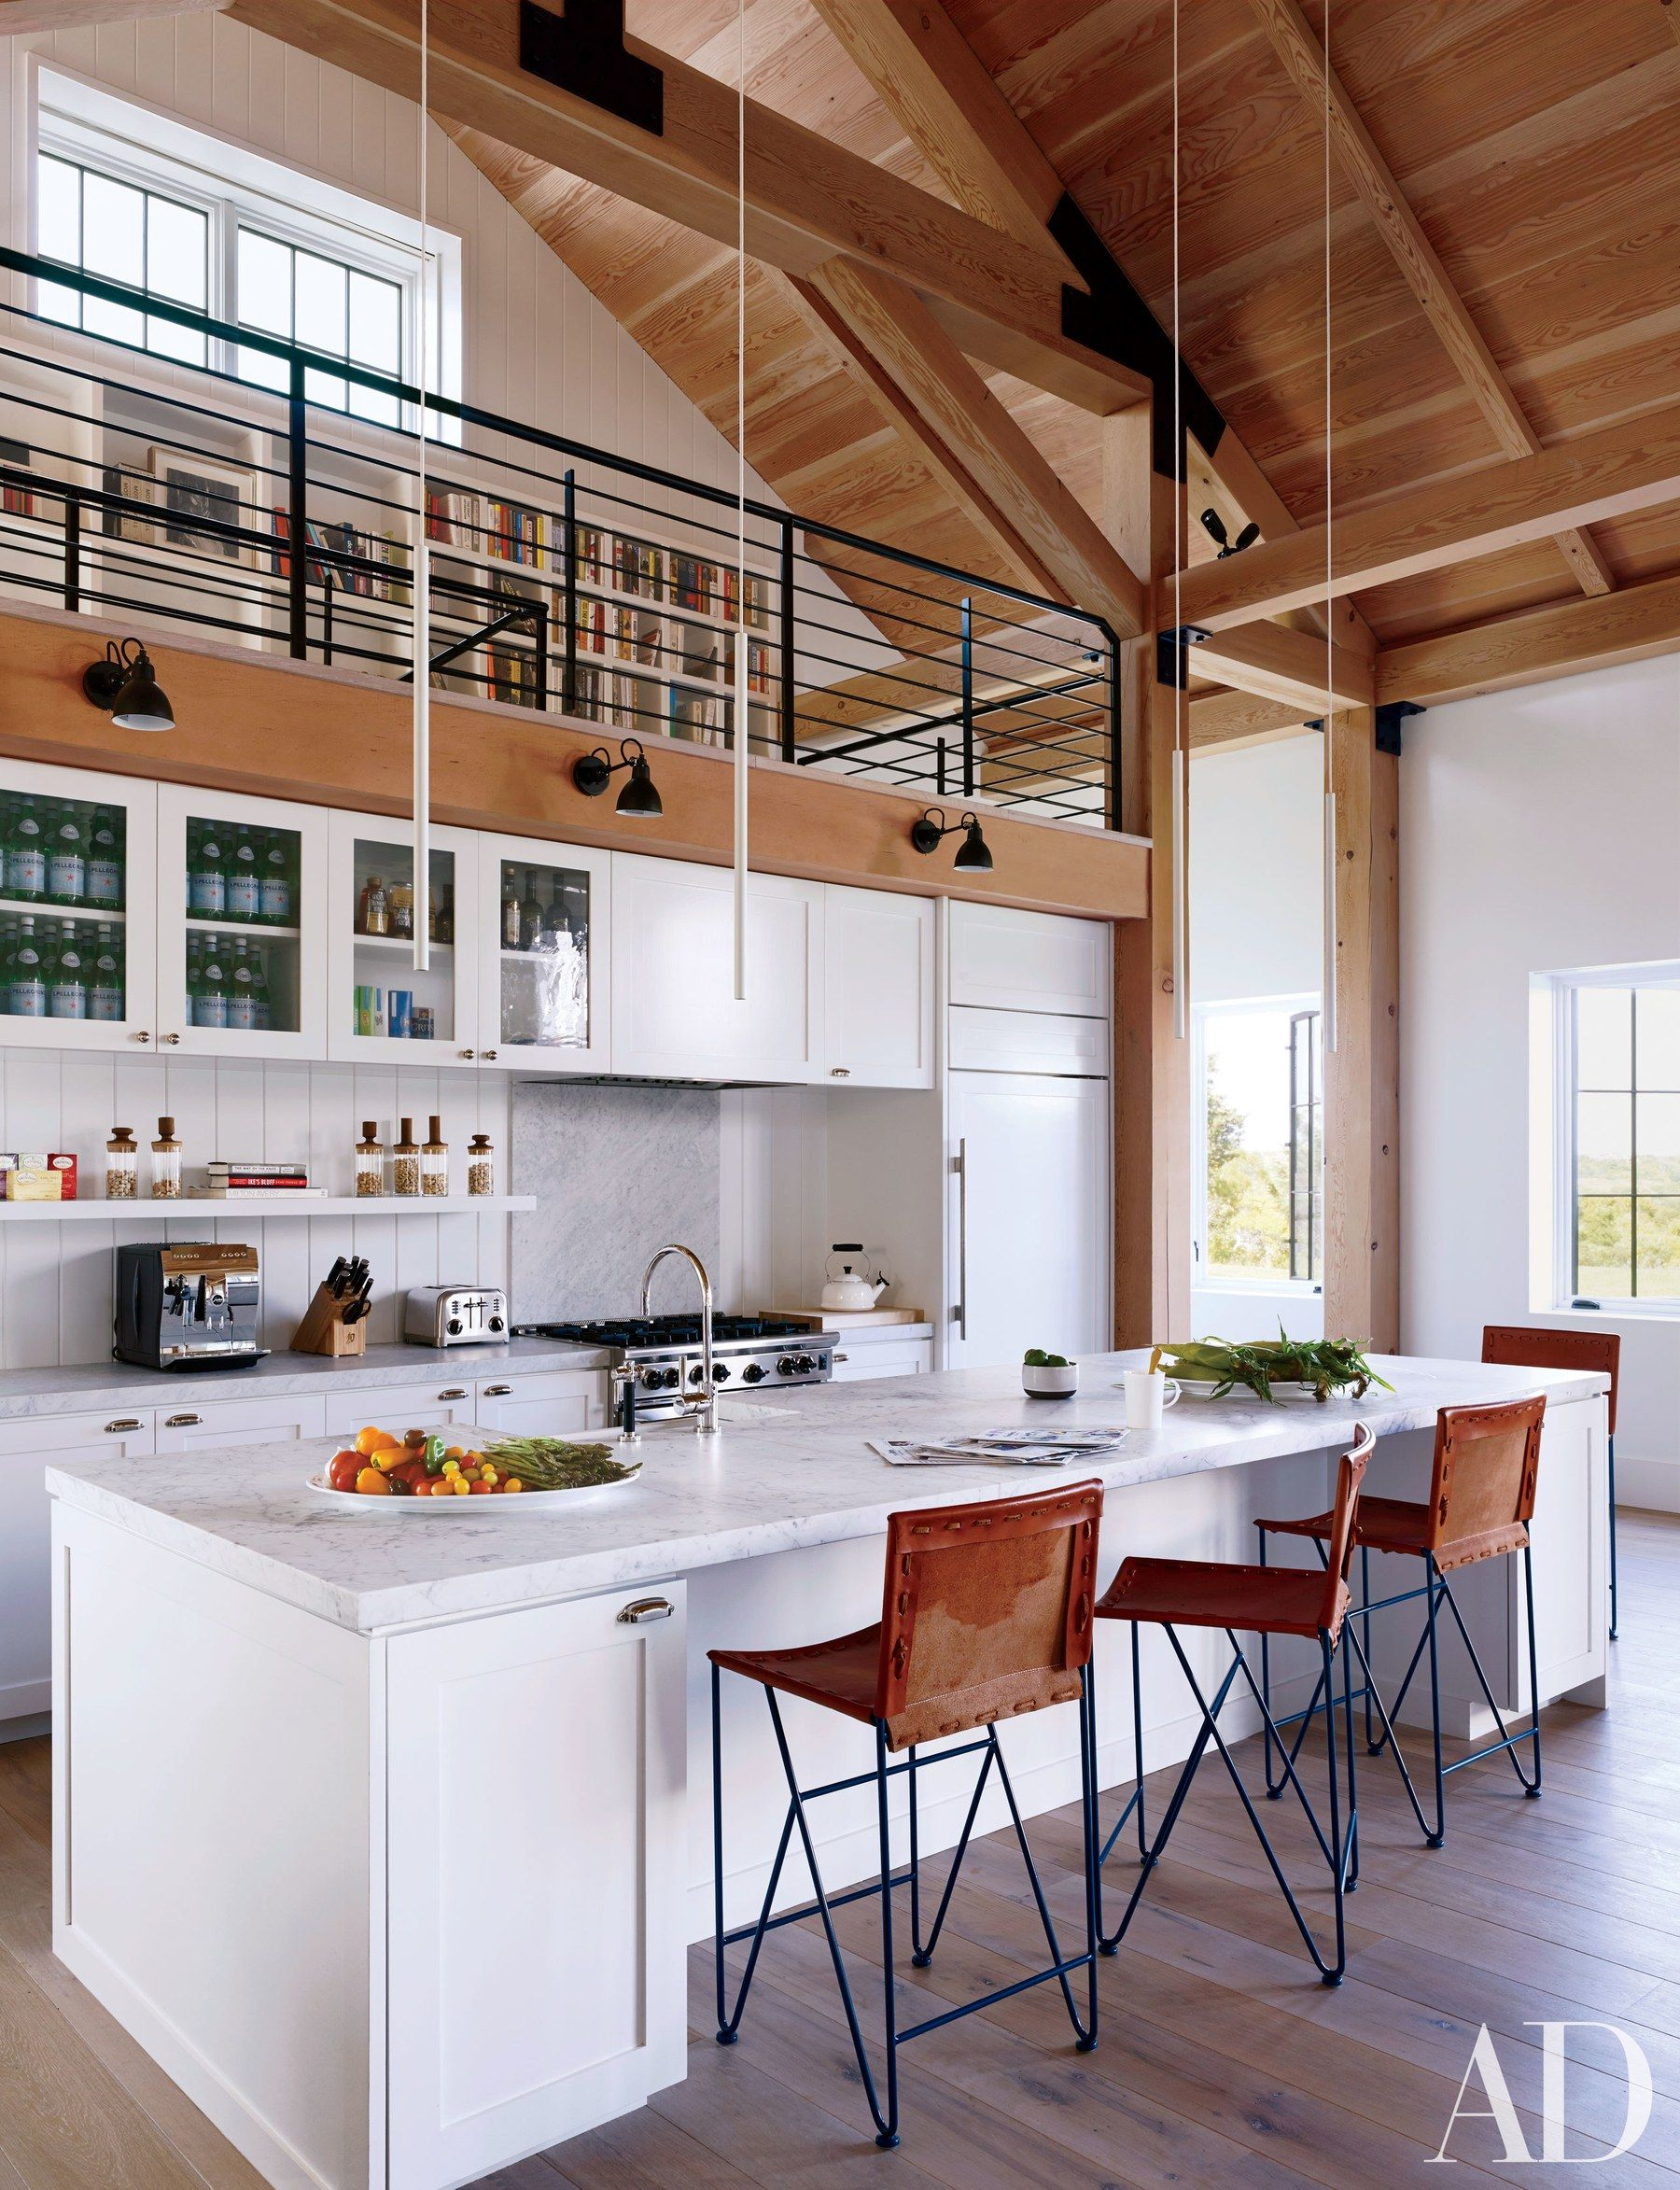 The kitchen of a marthaus vineyard home designed by ariel ashe and